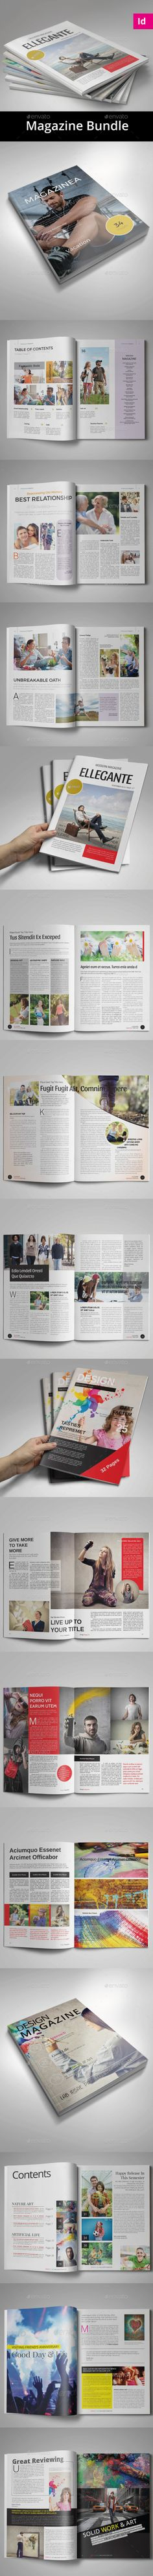 Professional Magazine Templates InDesign INDD Bundle. Download here: https://graphicriver.net/item/bundle-4-in-1-vol4/17514352?ref=ksioks